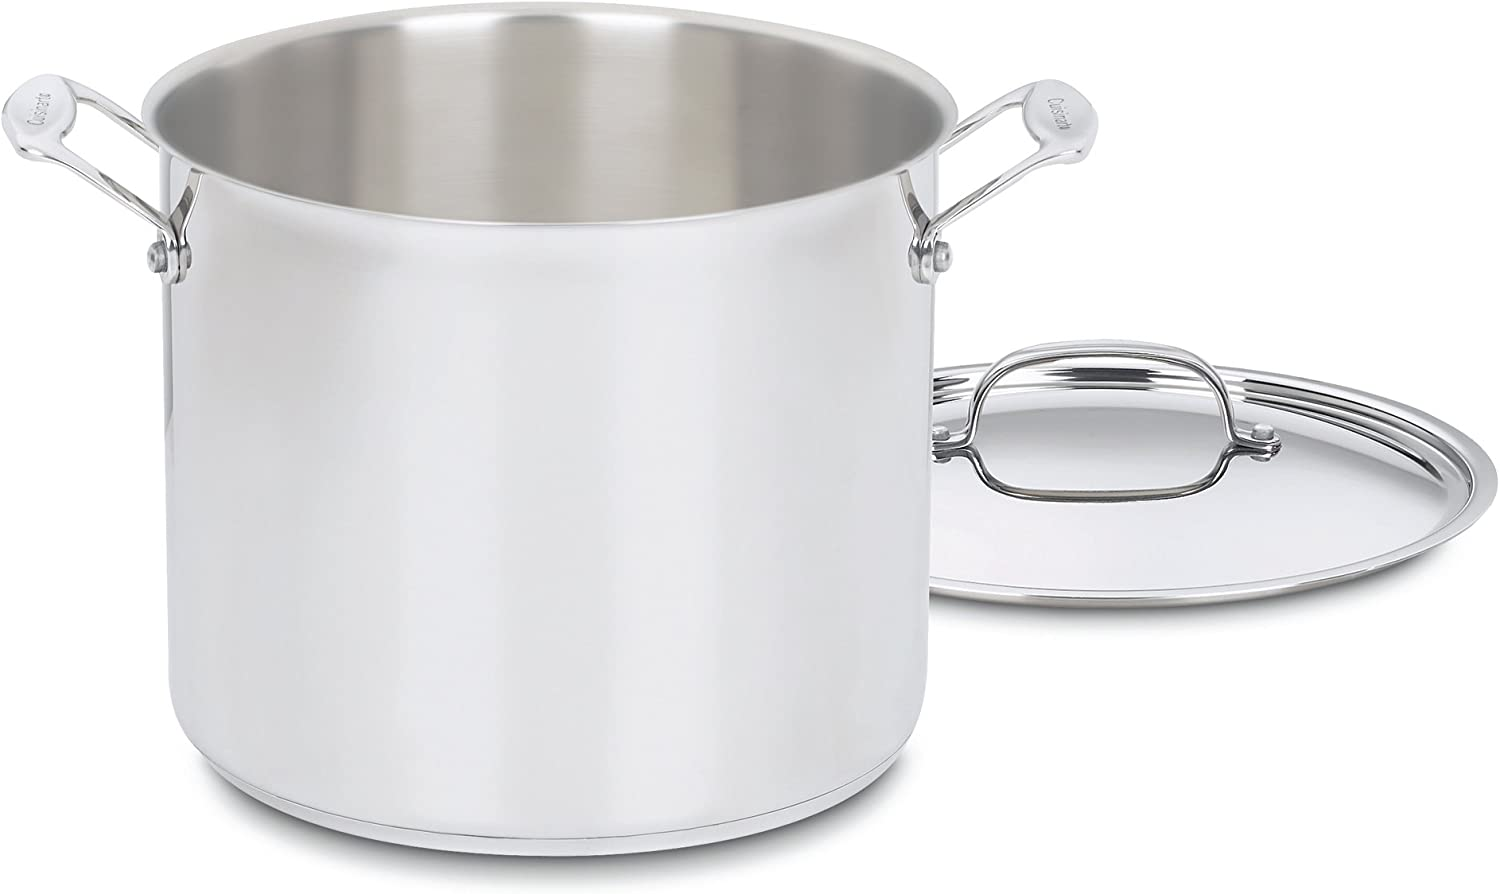 61fPuEP8smL. AC SL1500 The Best Gumbo Pots (Stockpots) for the Money 2021